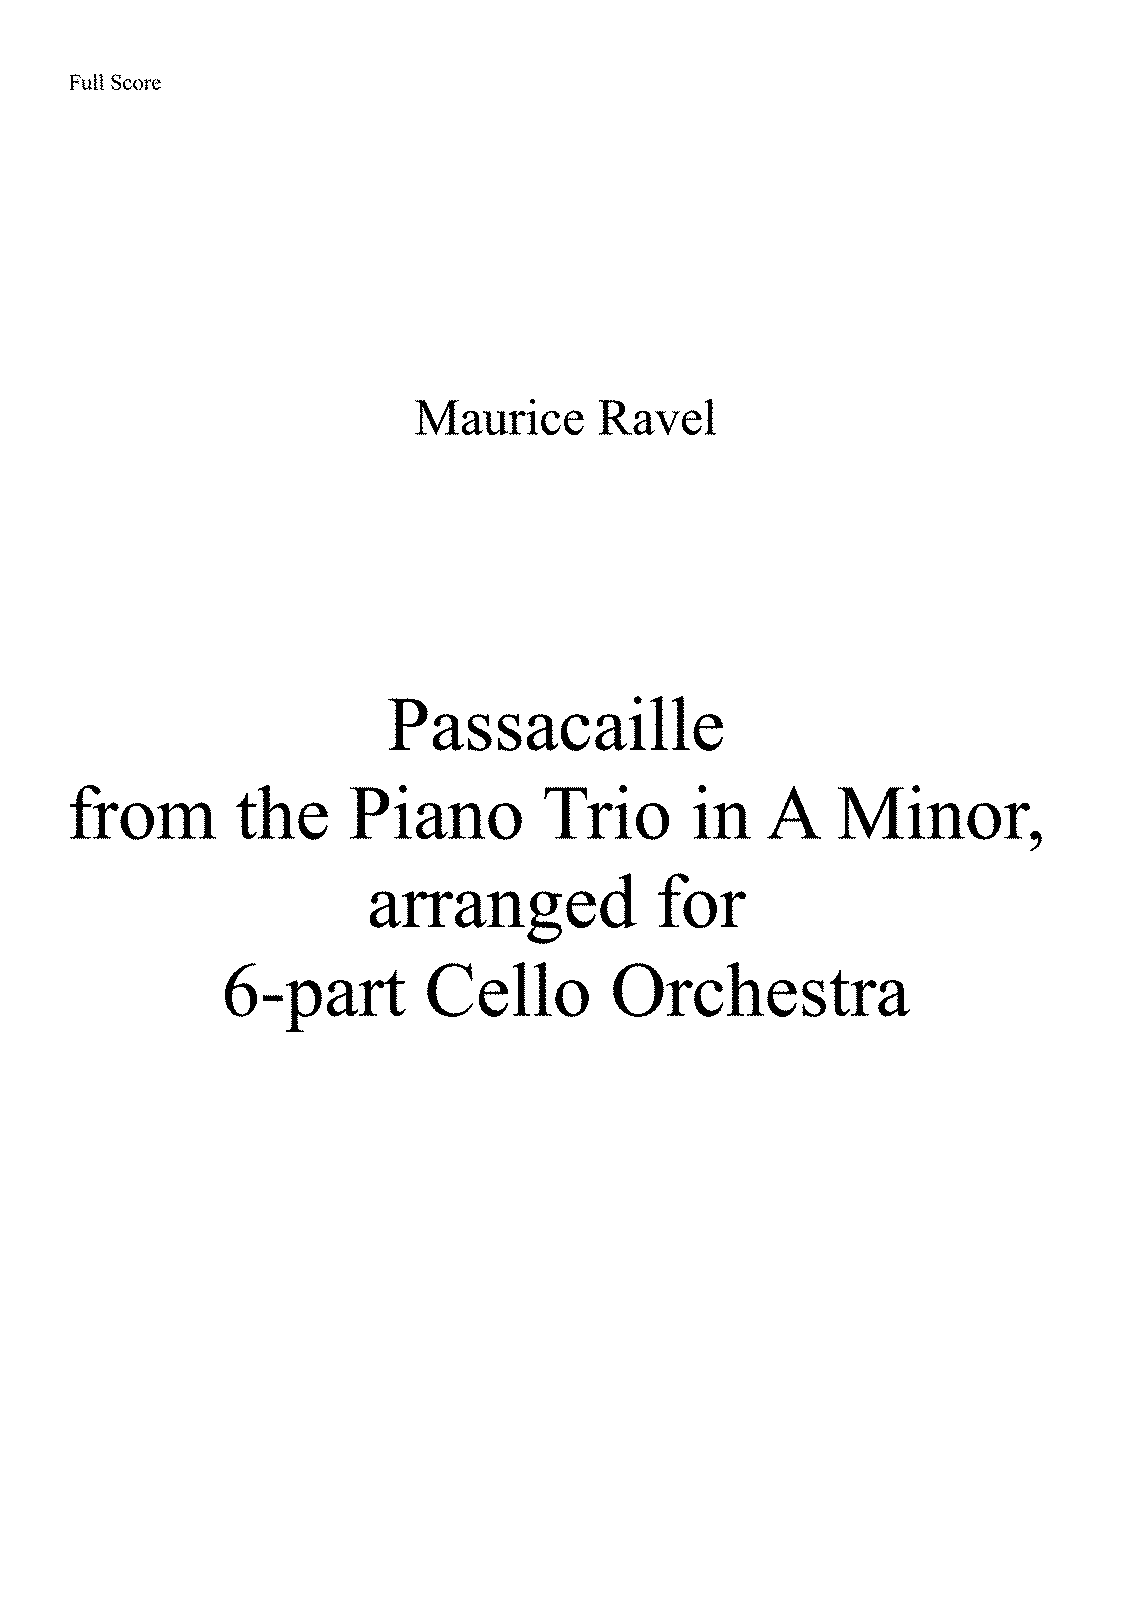 PMLP04940-Ravel PianoTrioPassacaille CelloOrchestraArrangement Seymour ForIMSLP - Full Score.pdf